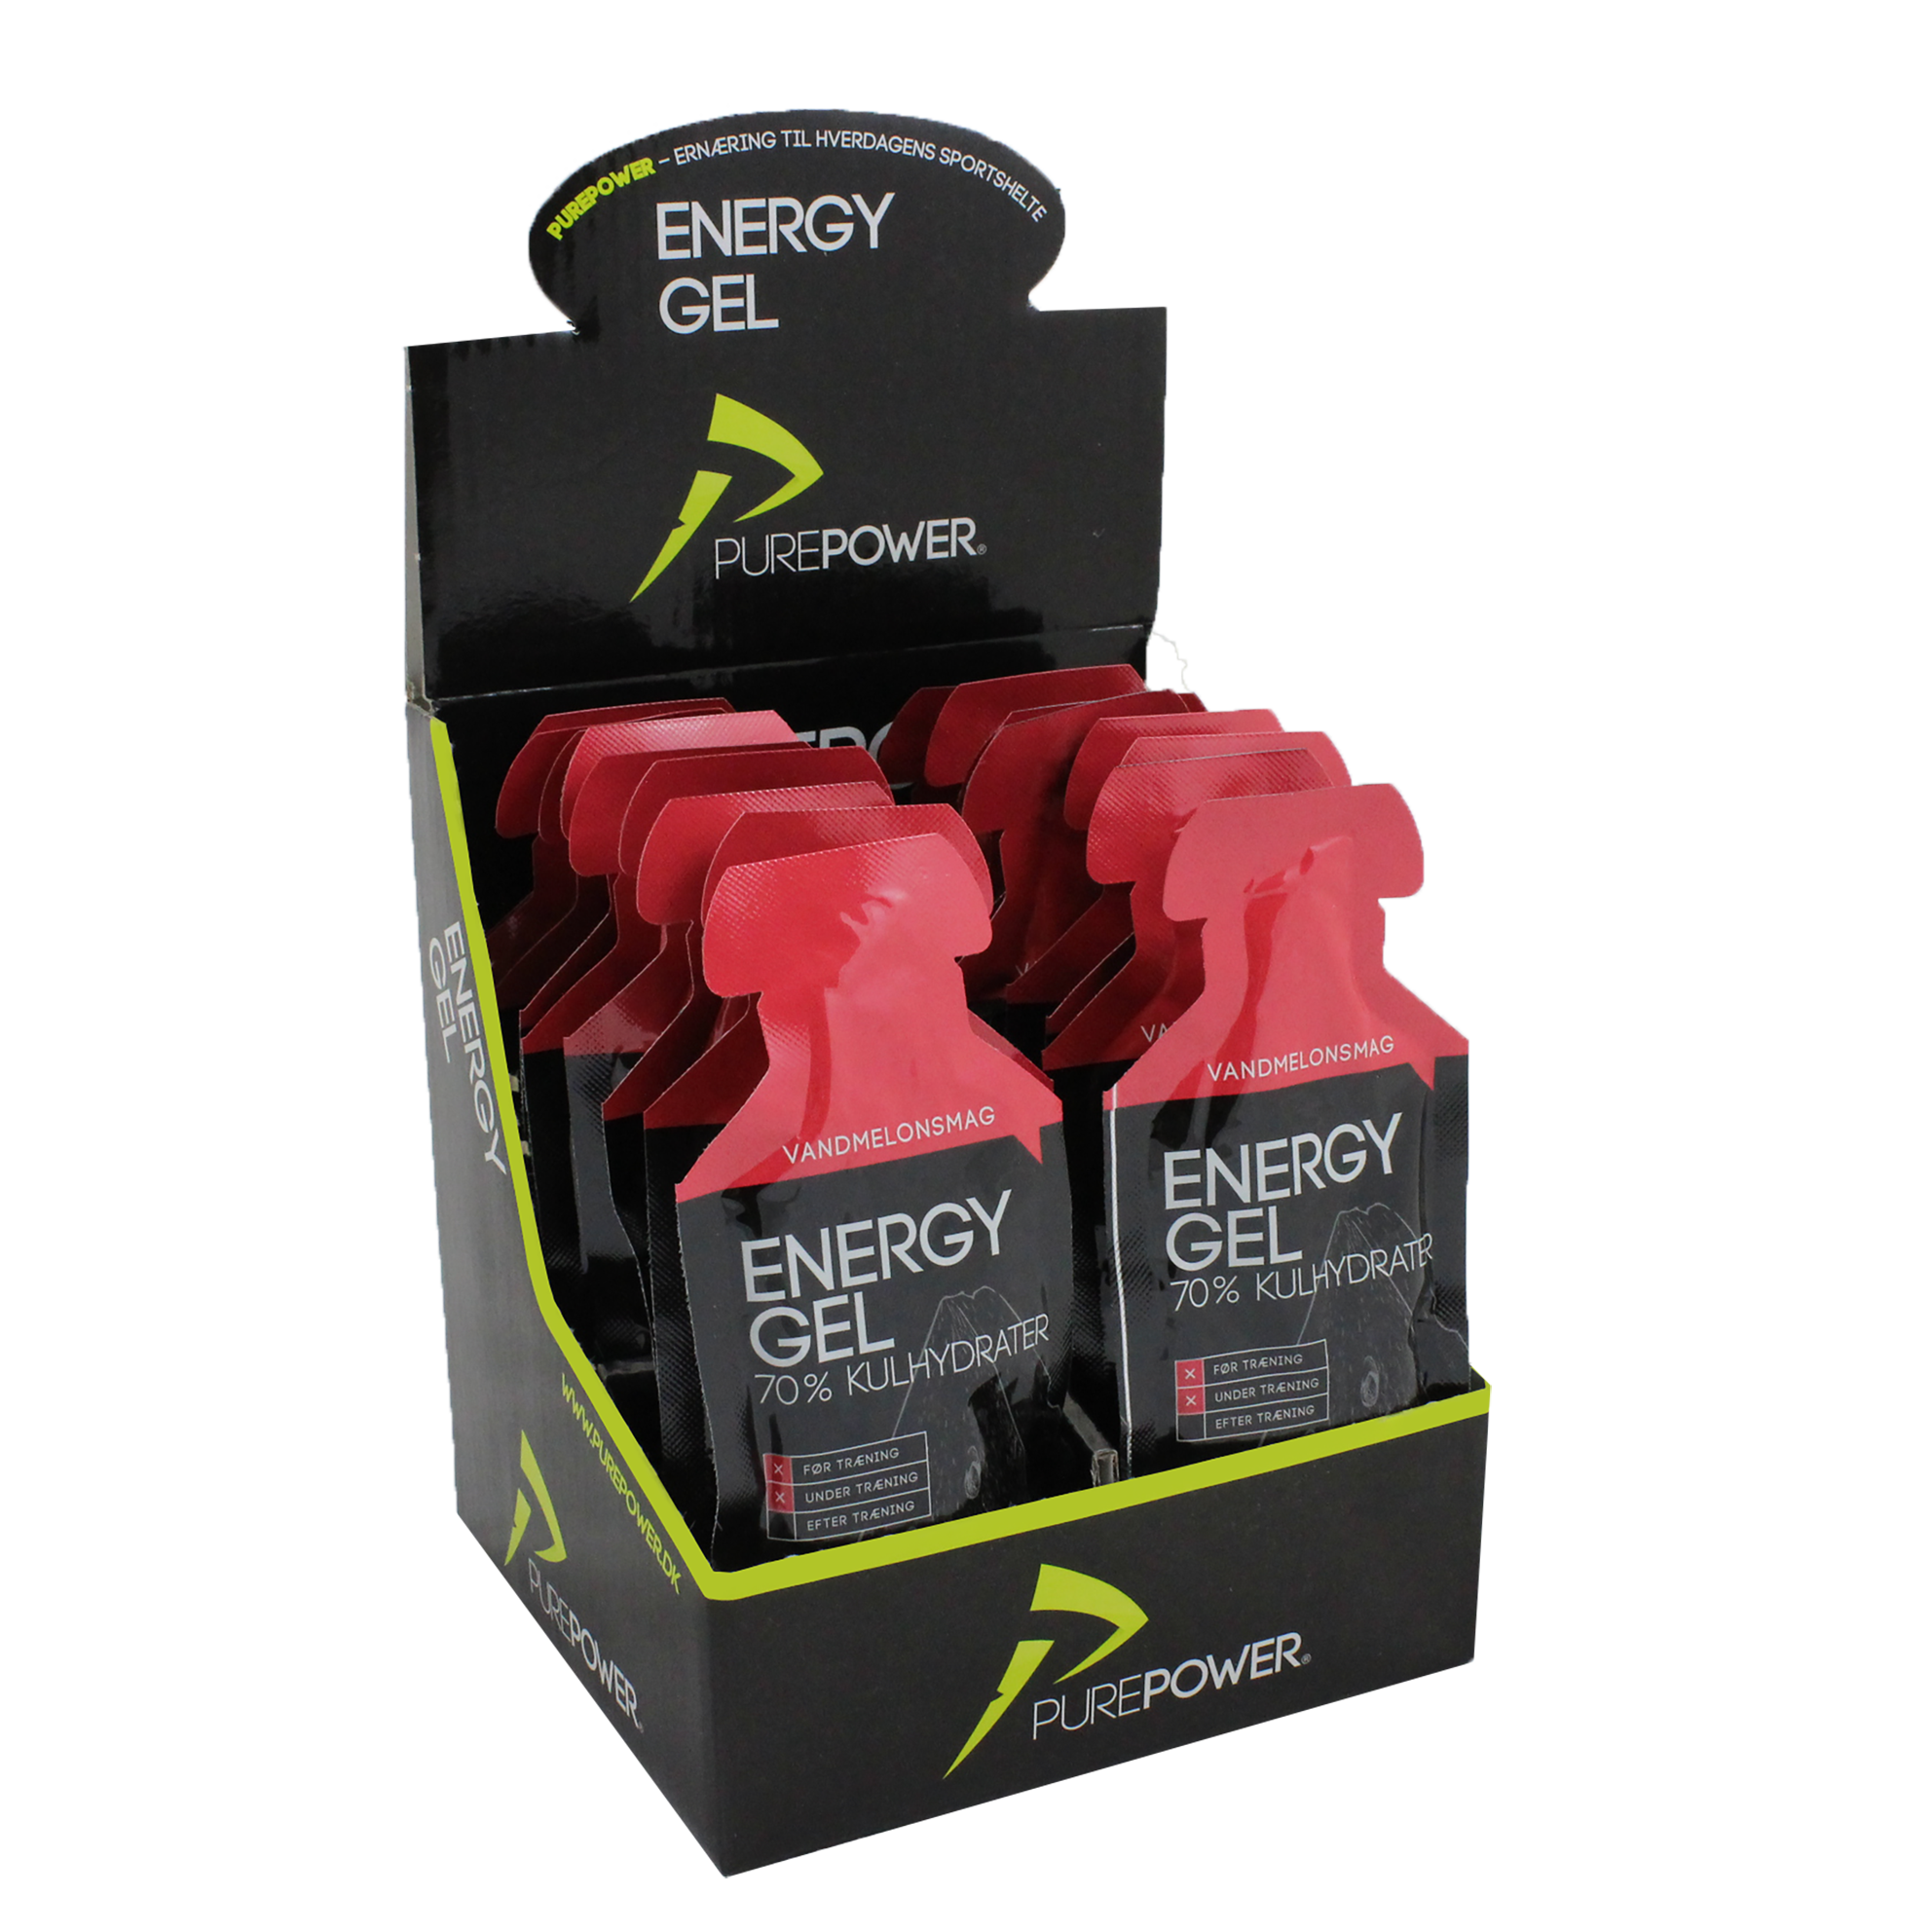 PurePower energigels fra PurePower